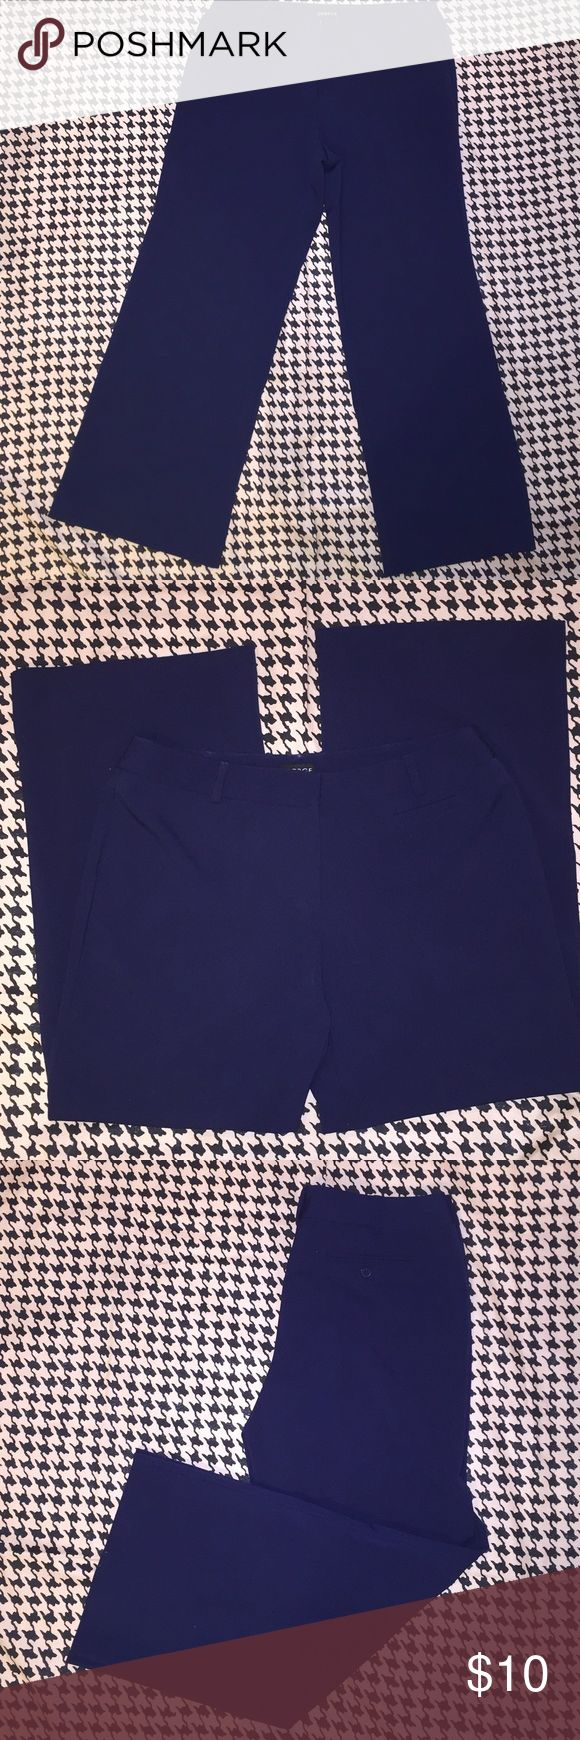 Women's Navy Blue Career Pants-12 Ladies Petite Women's Navy Blue Dress Pants. 63% Polyester,  32% Rayon, 5% Spandex. George Pants Trousers